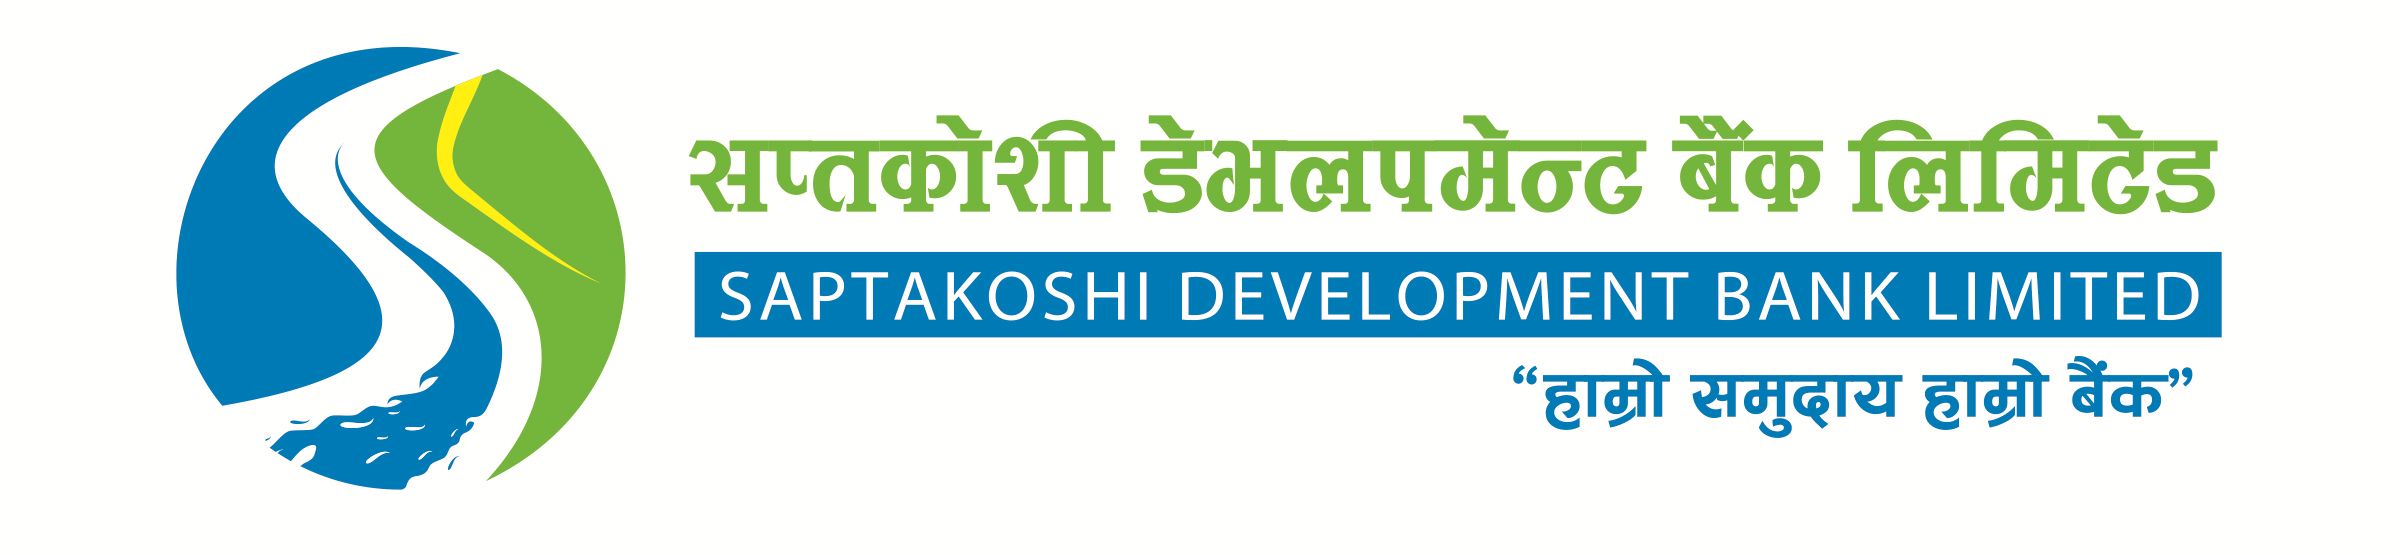 welcome saptakoshi development bank limited